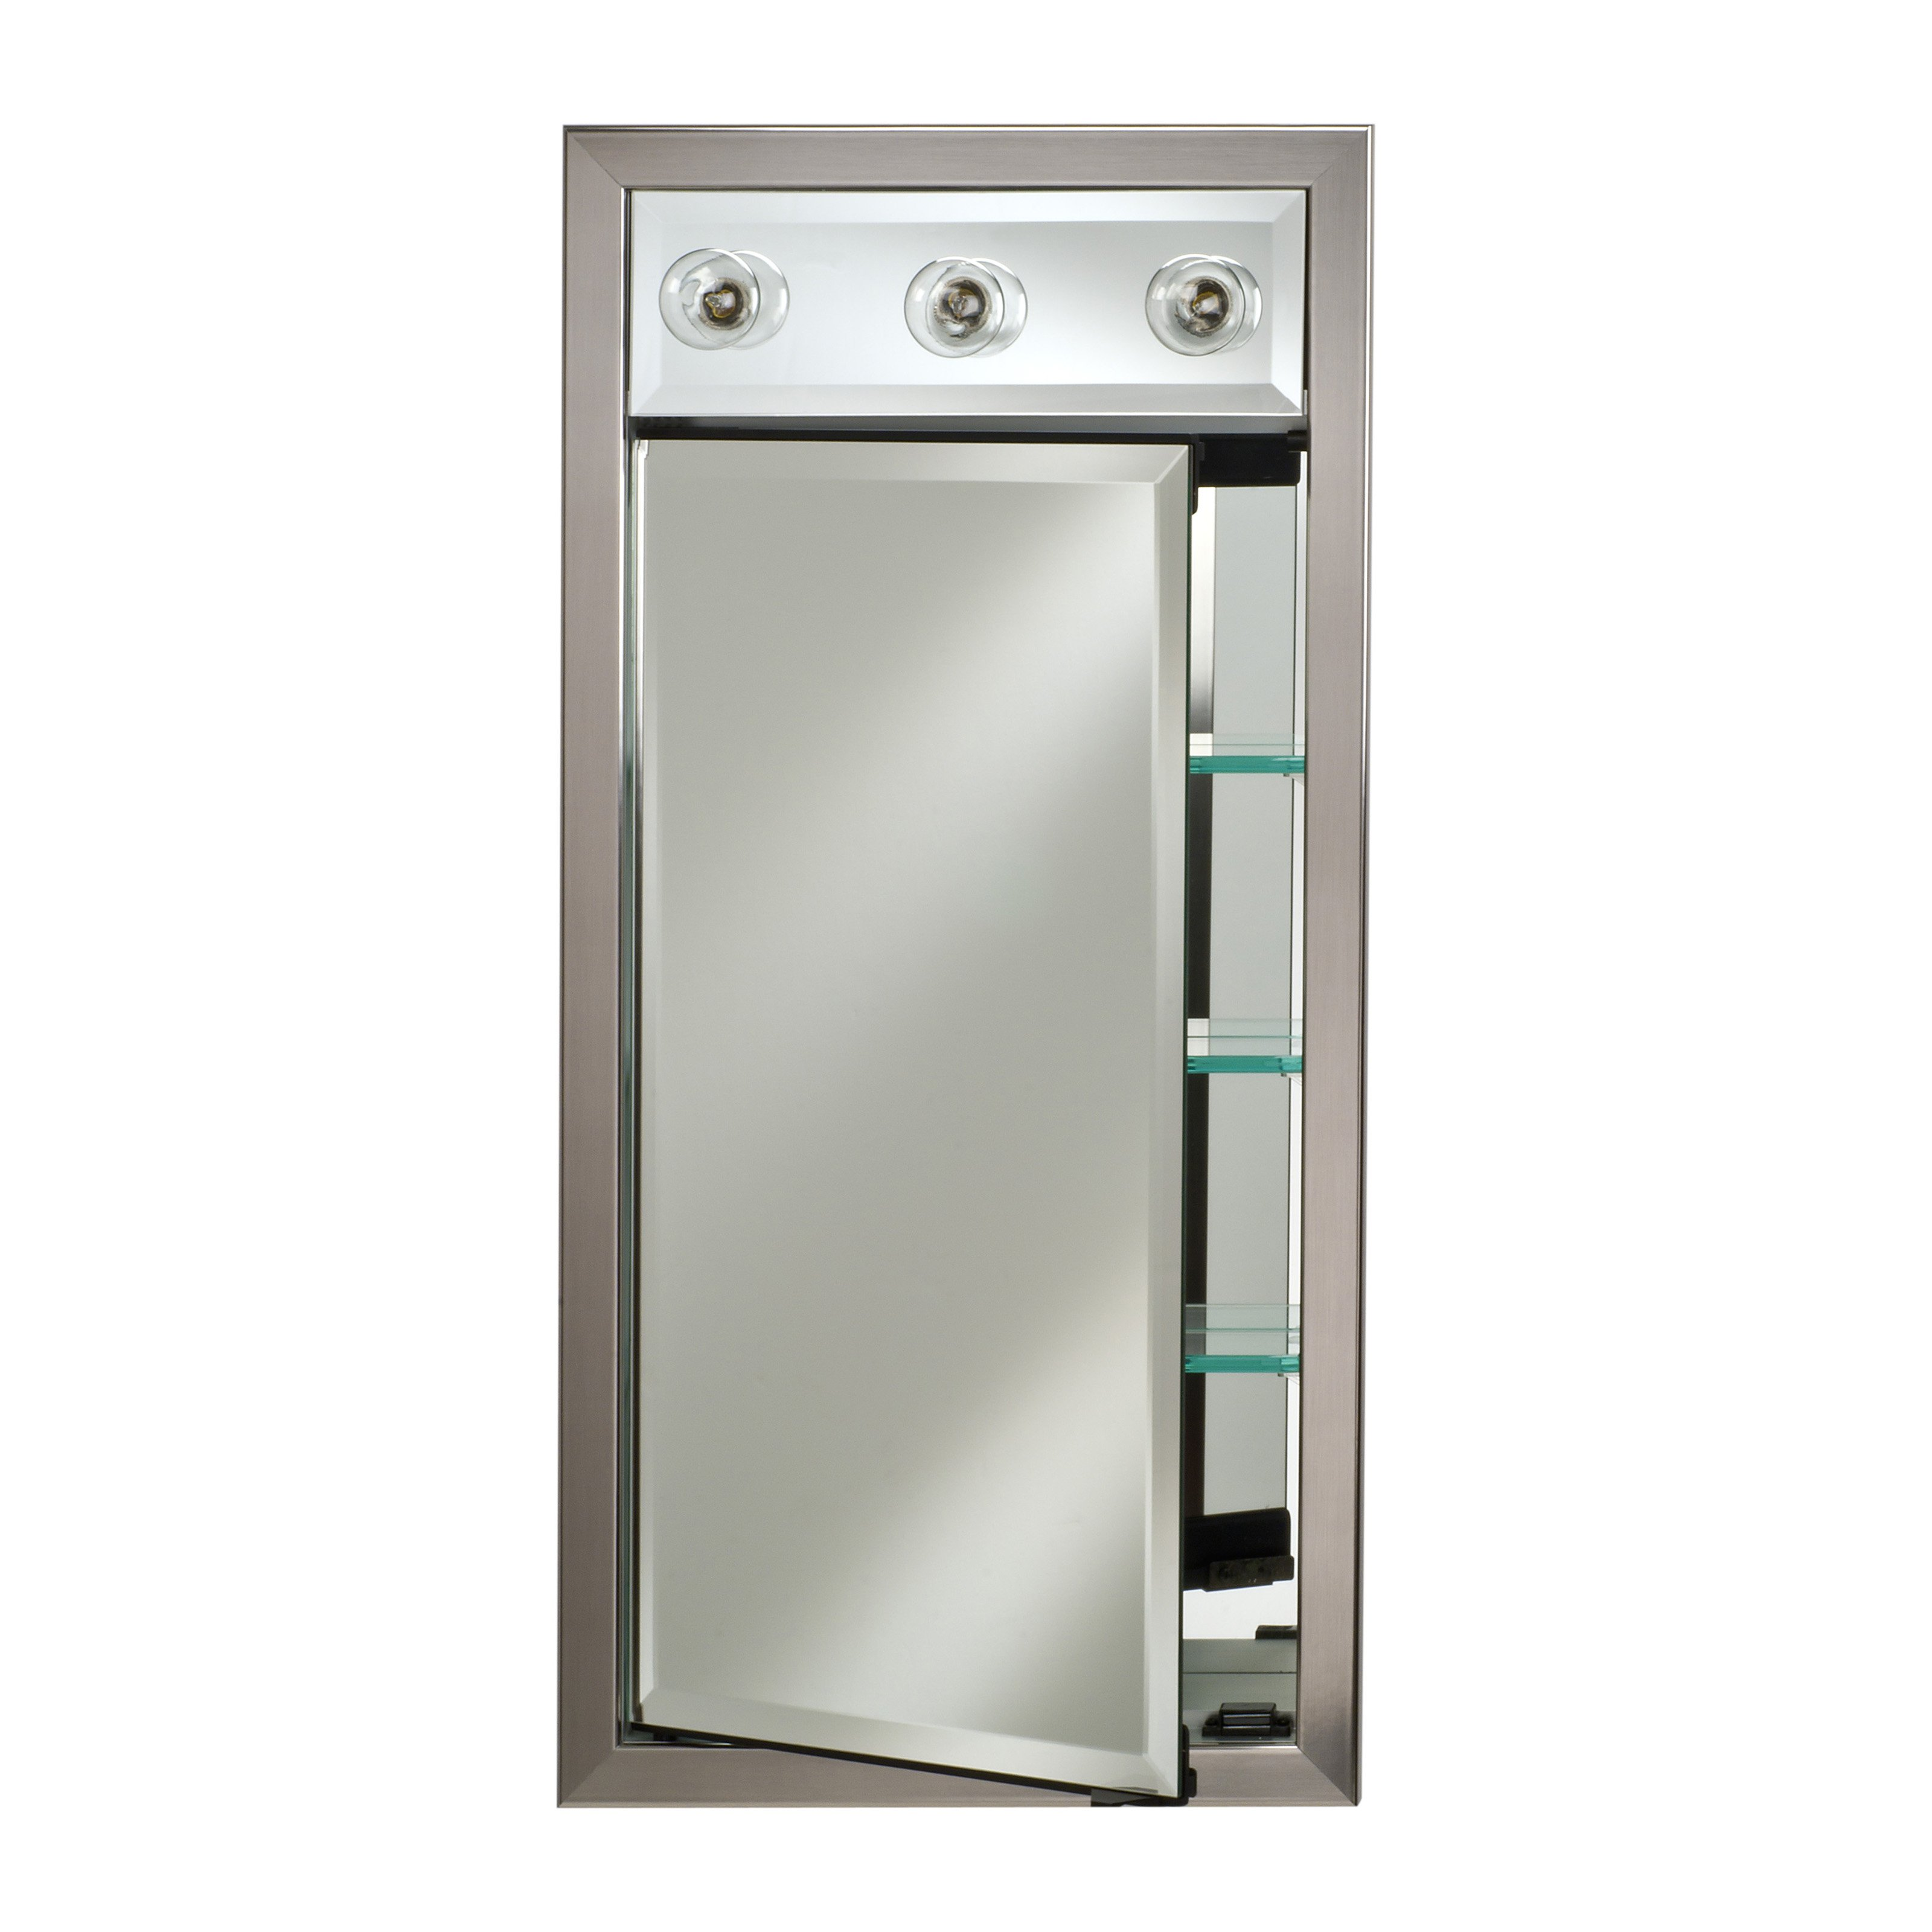 Afina Signature Collection Contemporary Integral Lighted Single Door 24W x 40H in. Recessed Medicine Cabinet